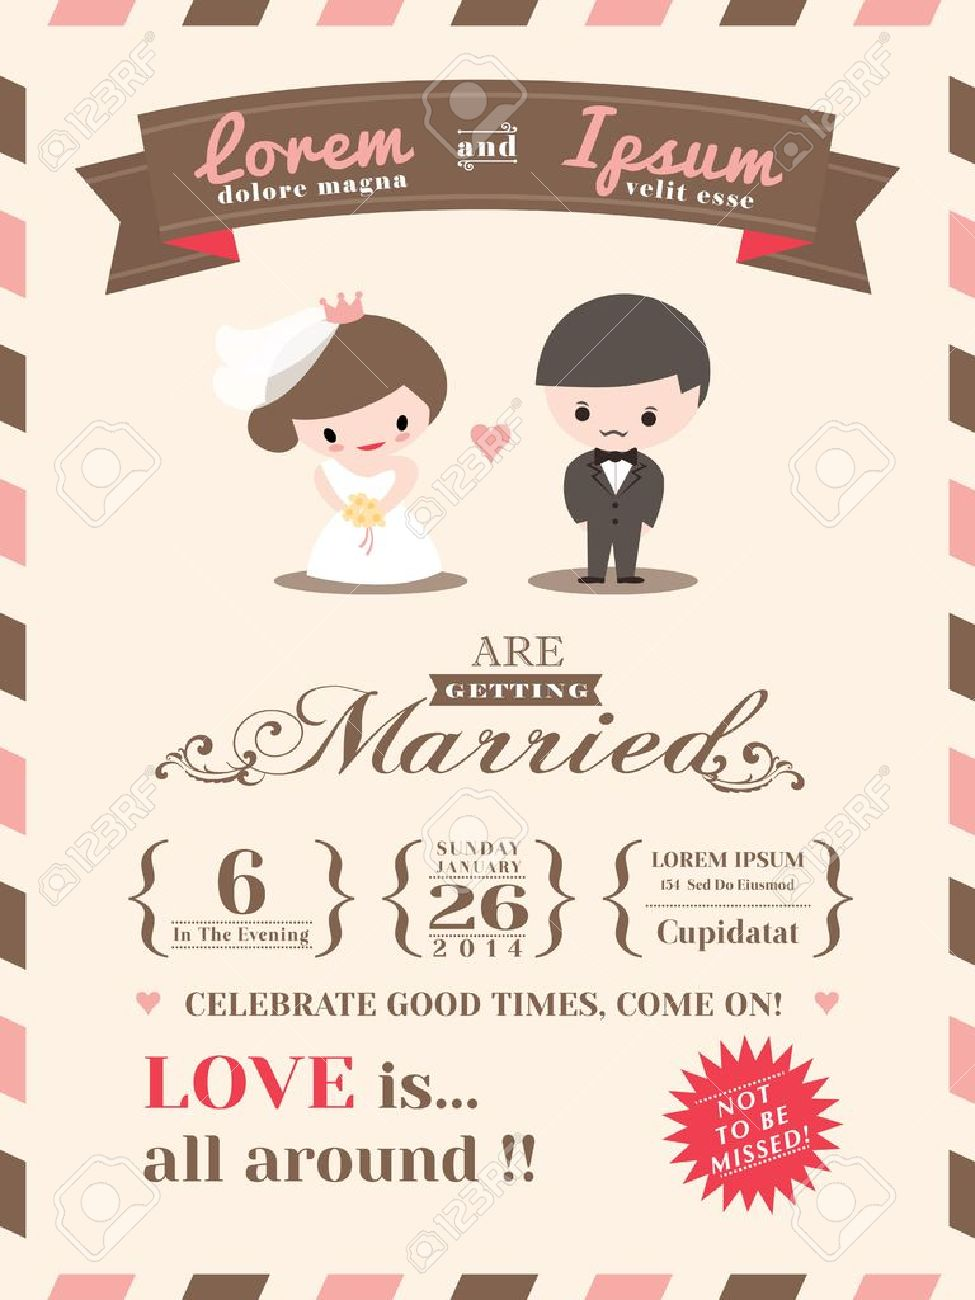 Wedding Invitation Card Template With Cute Groom And Bride Cartoon – Free Wedding Invitation Card Template